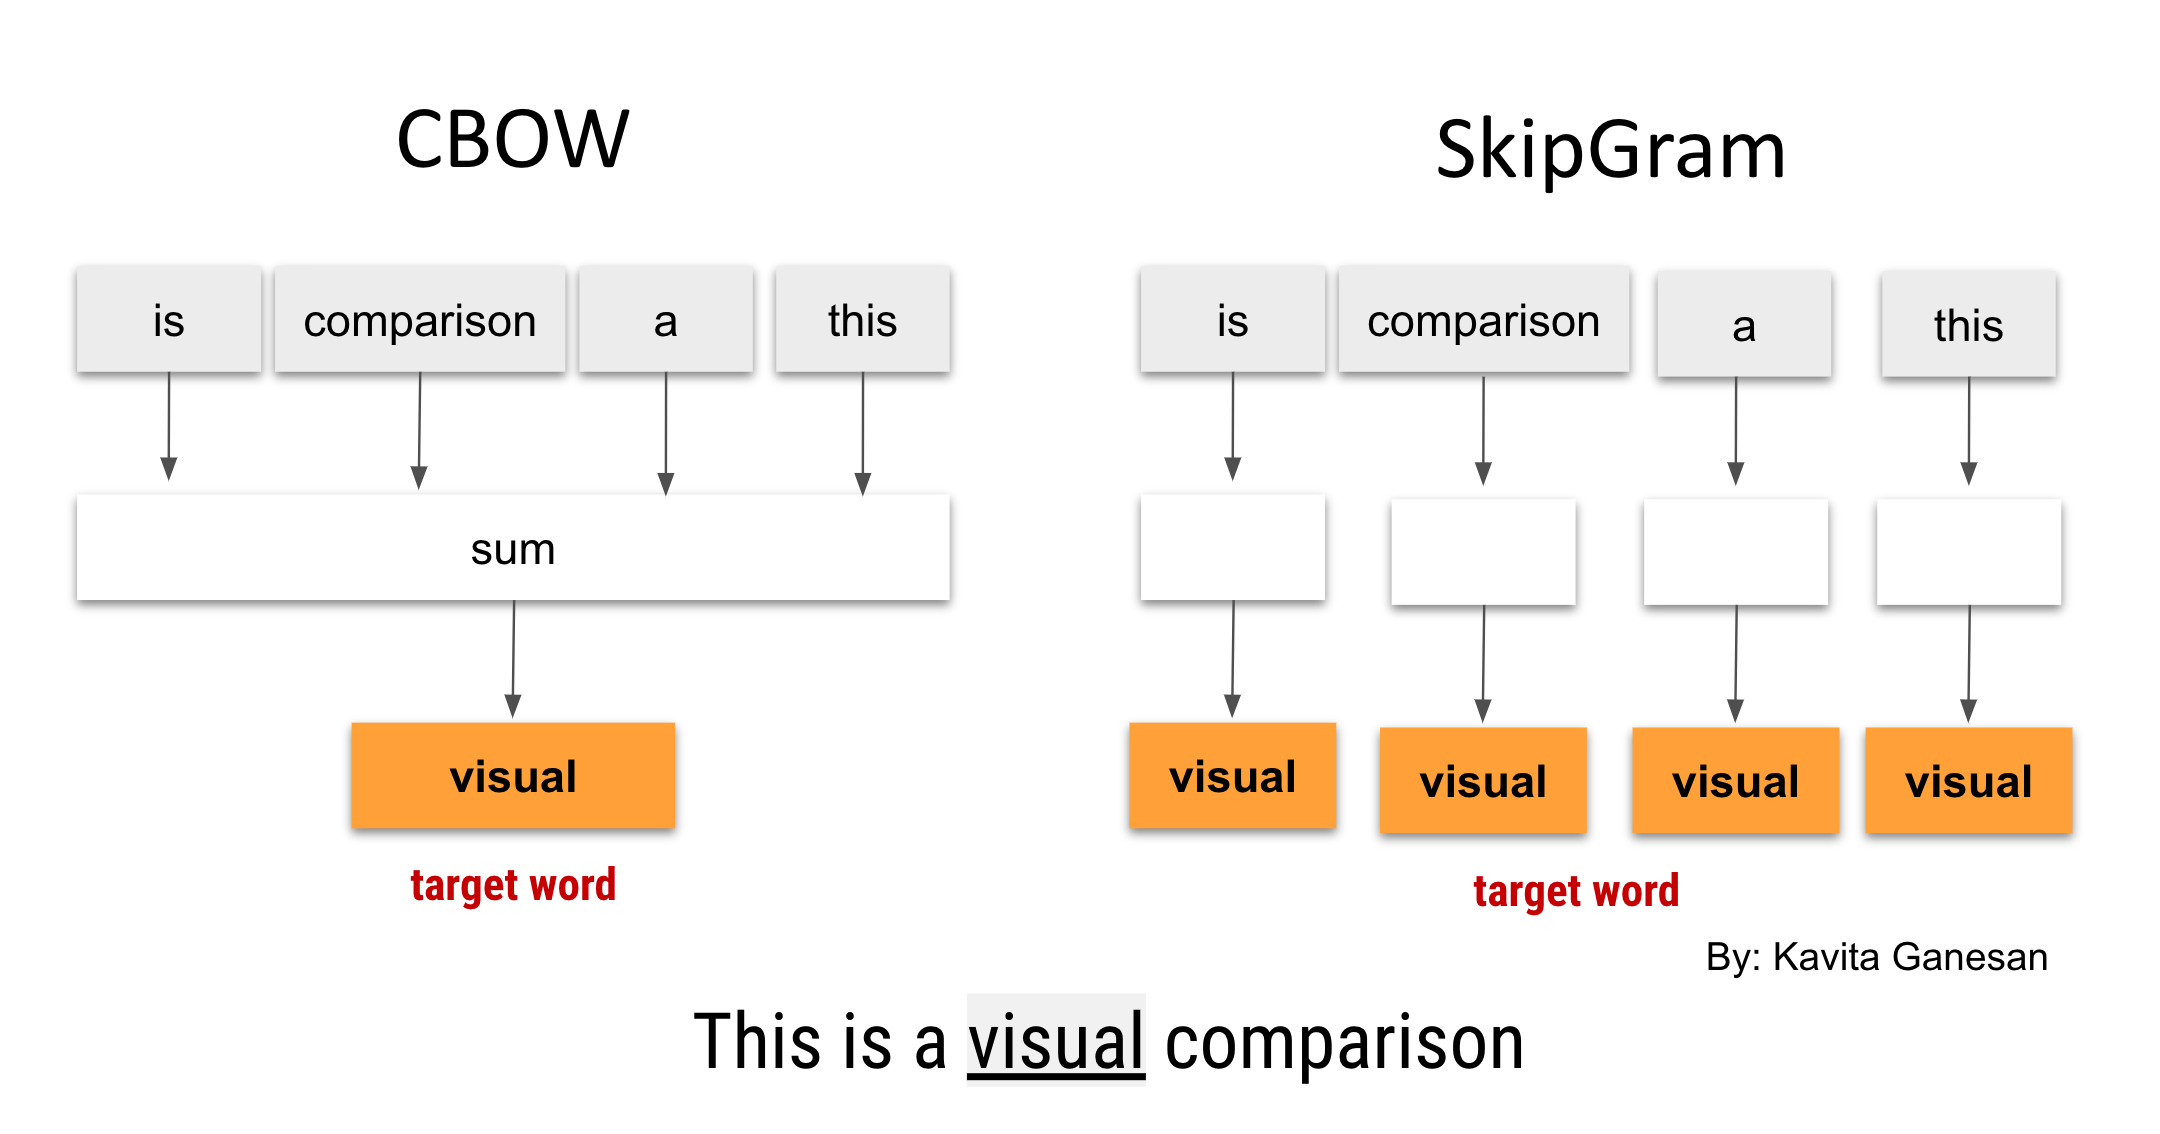 Word2Vec: A Comparison Between CBOW, SkipGram & SkipGramSI